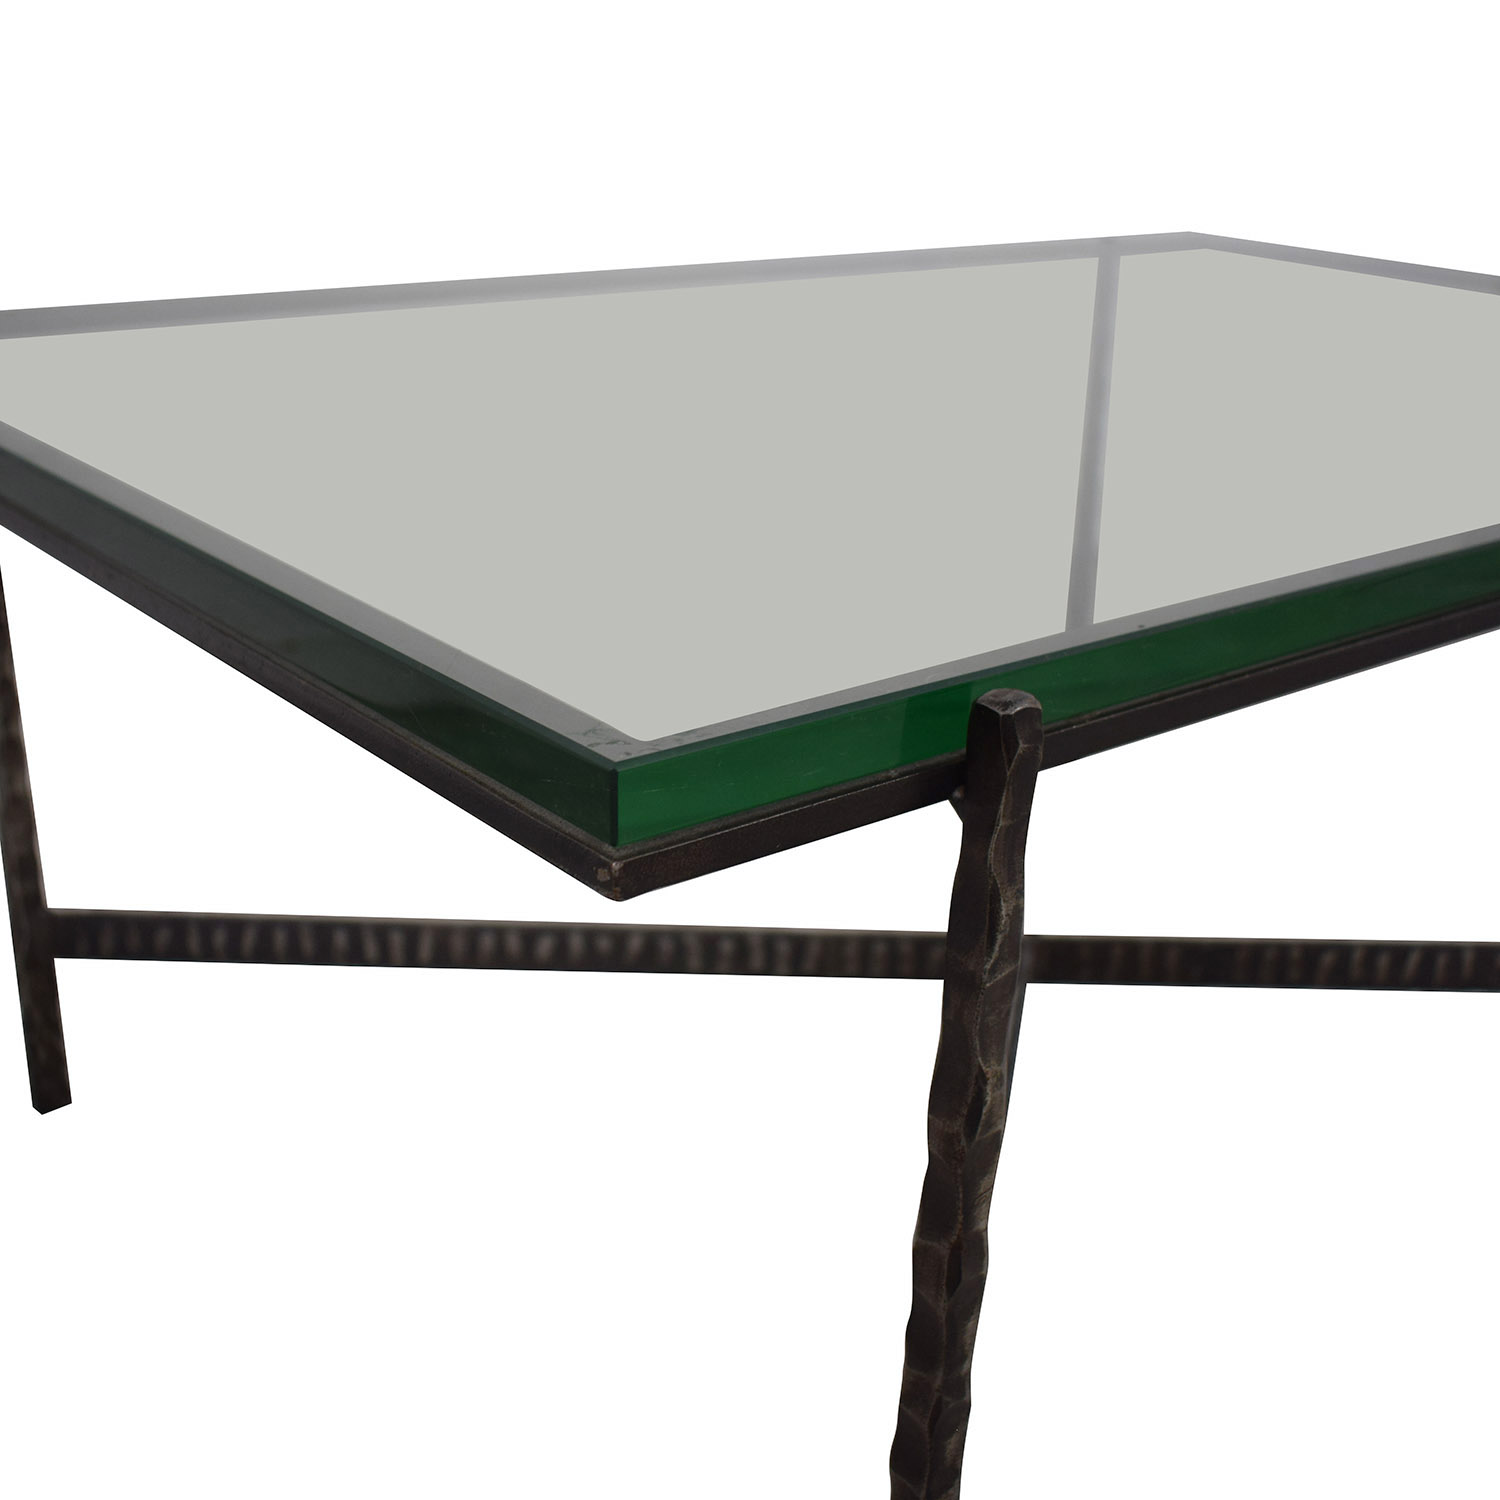 shop Crate & Barrel Glass Top Coffee Table Crate & Barrel Coffee Tables